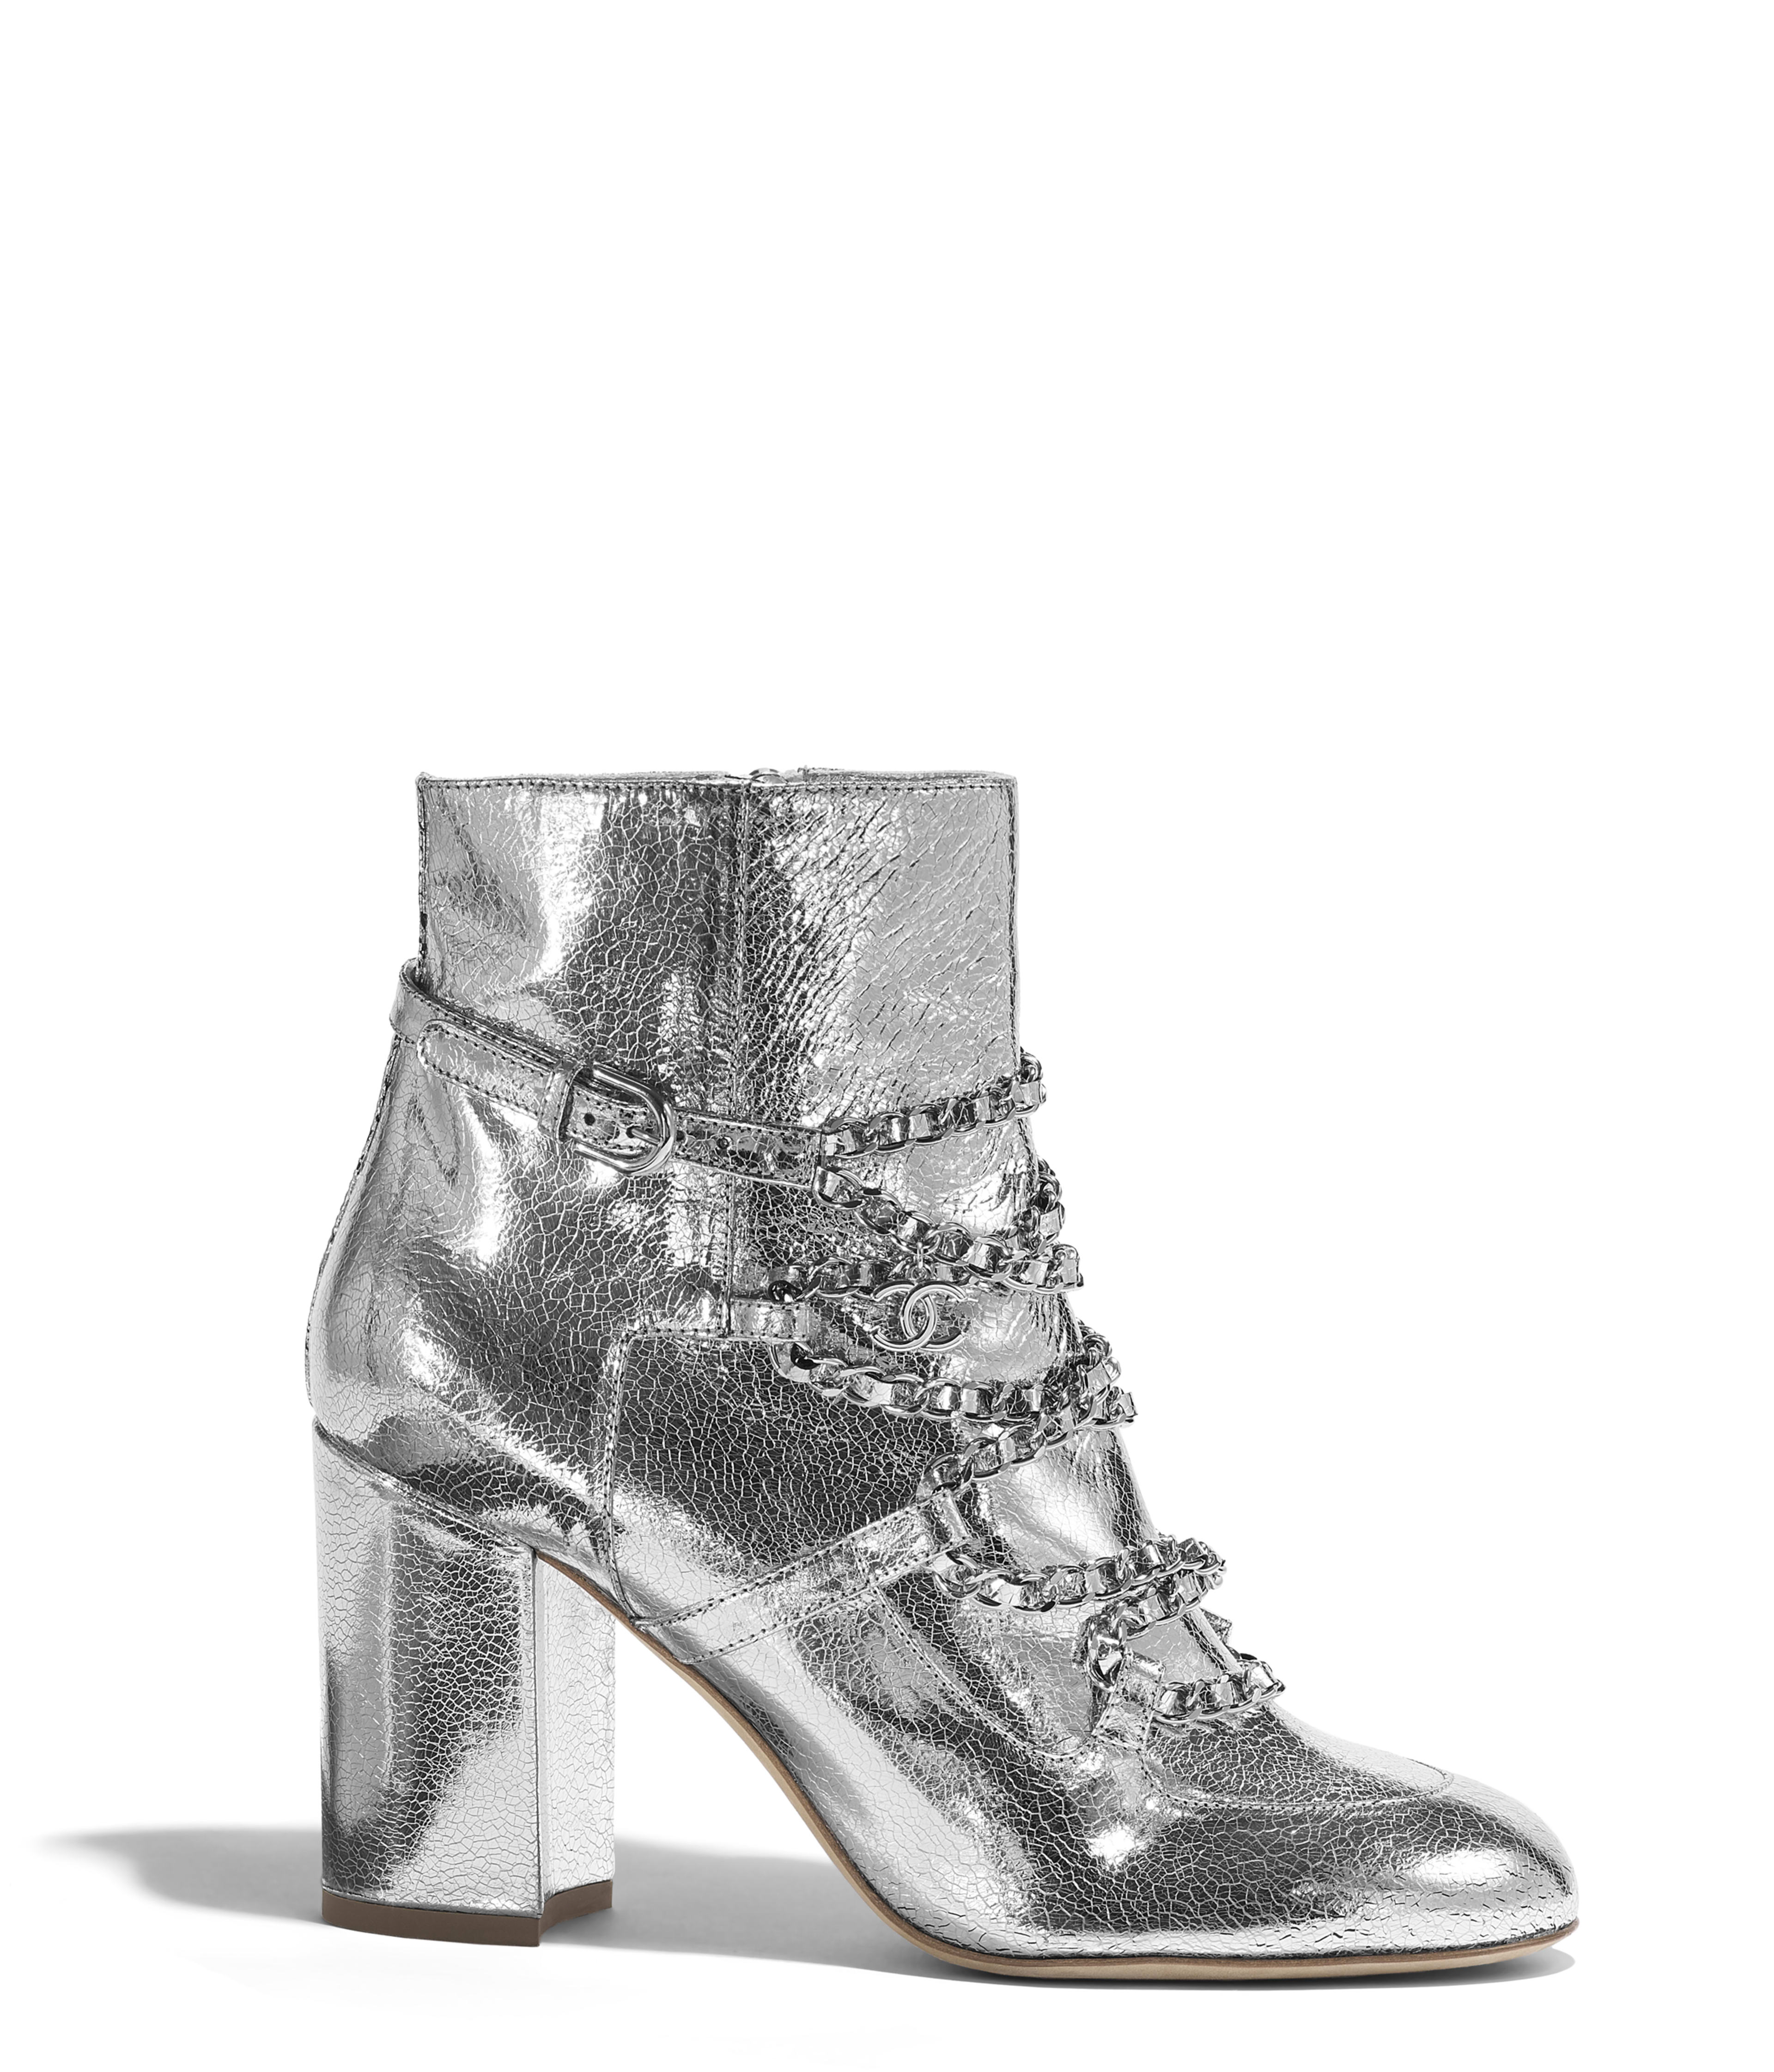 5d721d735 Ankle Boots Laminated Goatskin, Silver Ref. G34489X529670H559